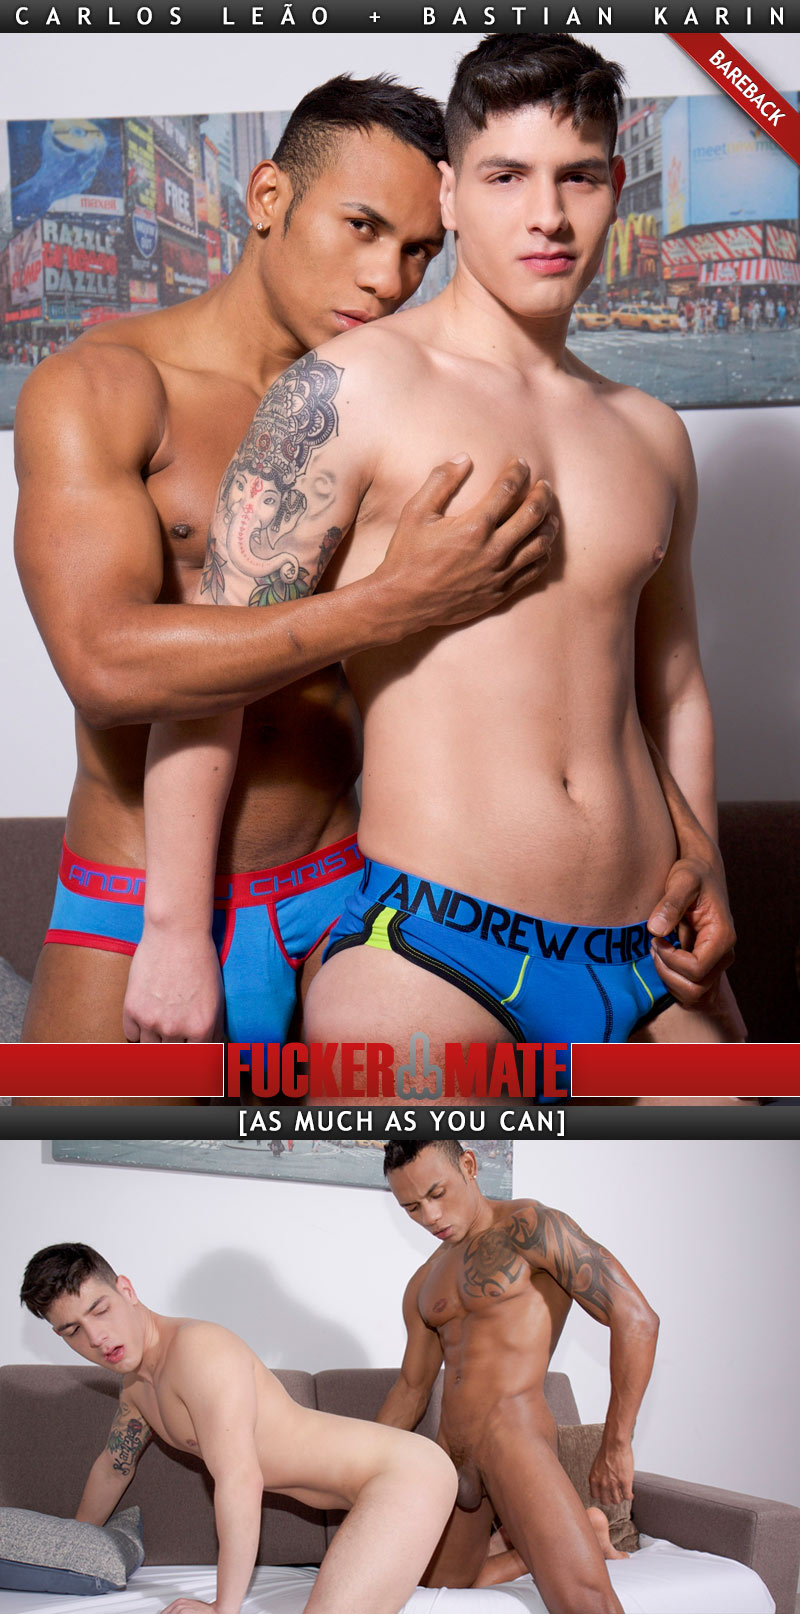 As Much As You Can (Carlos Leão Fucks Bastian Karin) (Bareback) at Fuckermate